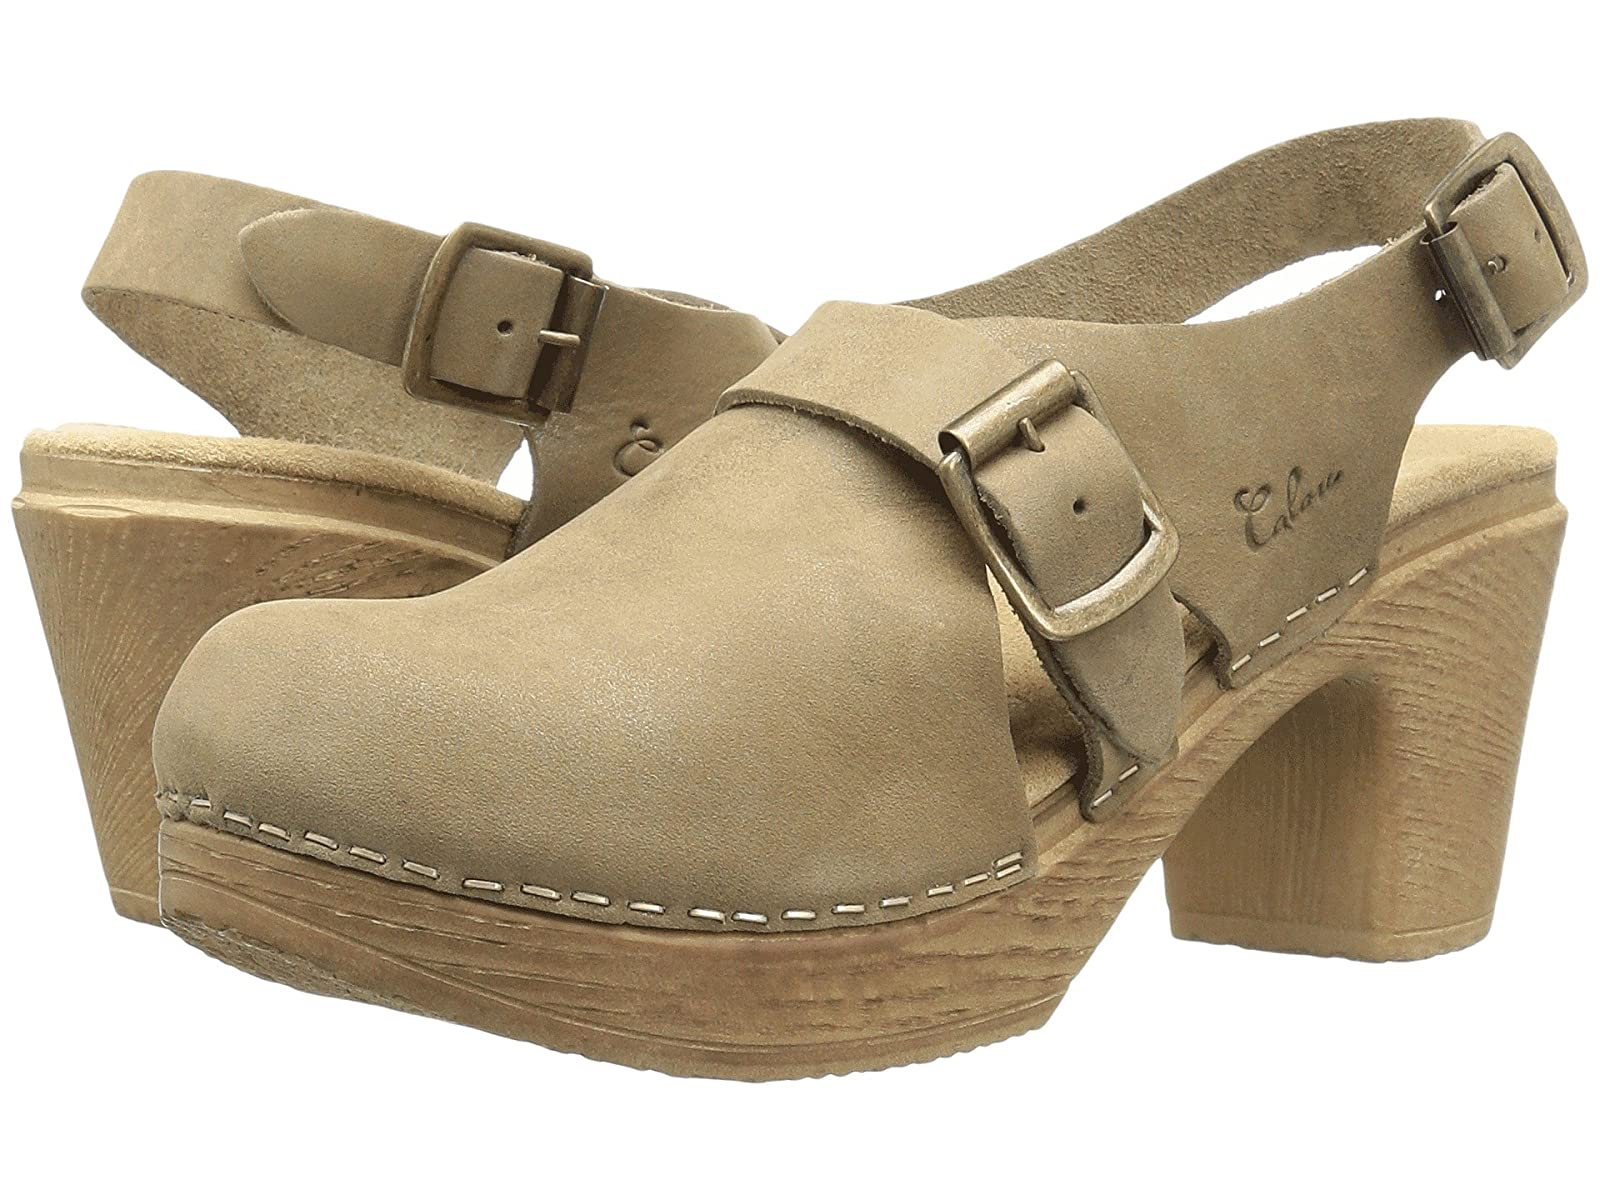 Calou Stockholm AstridCheap and distinctive eye-catching shoes